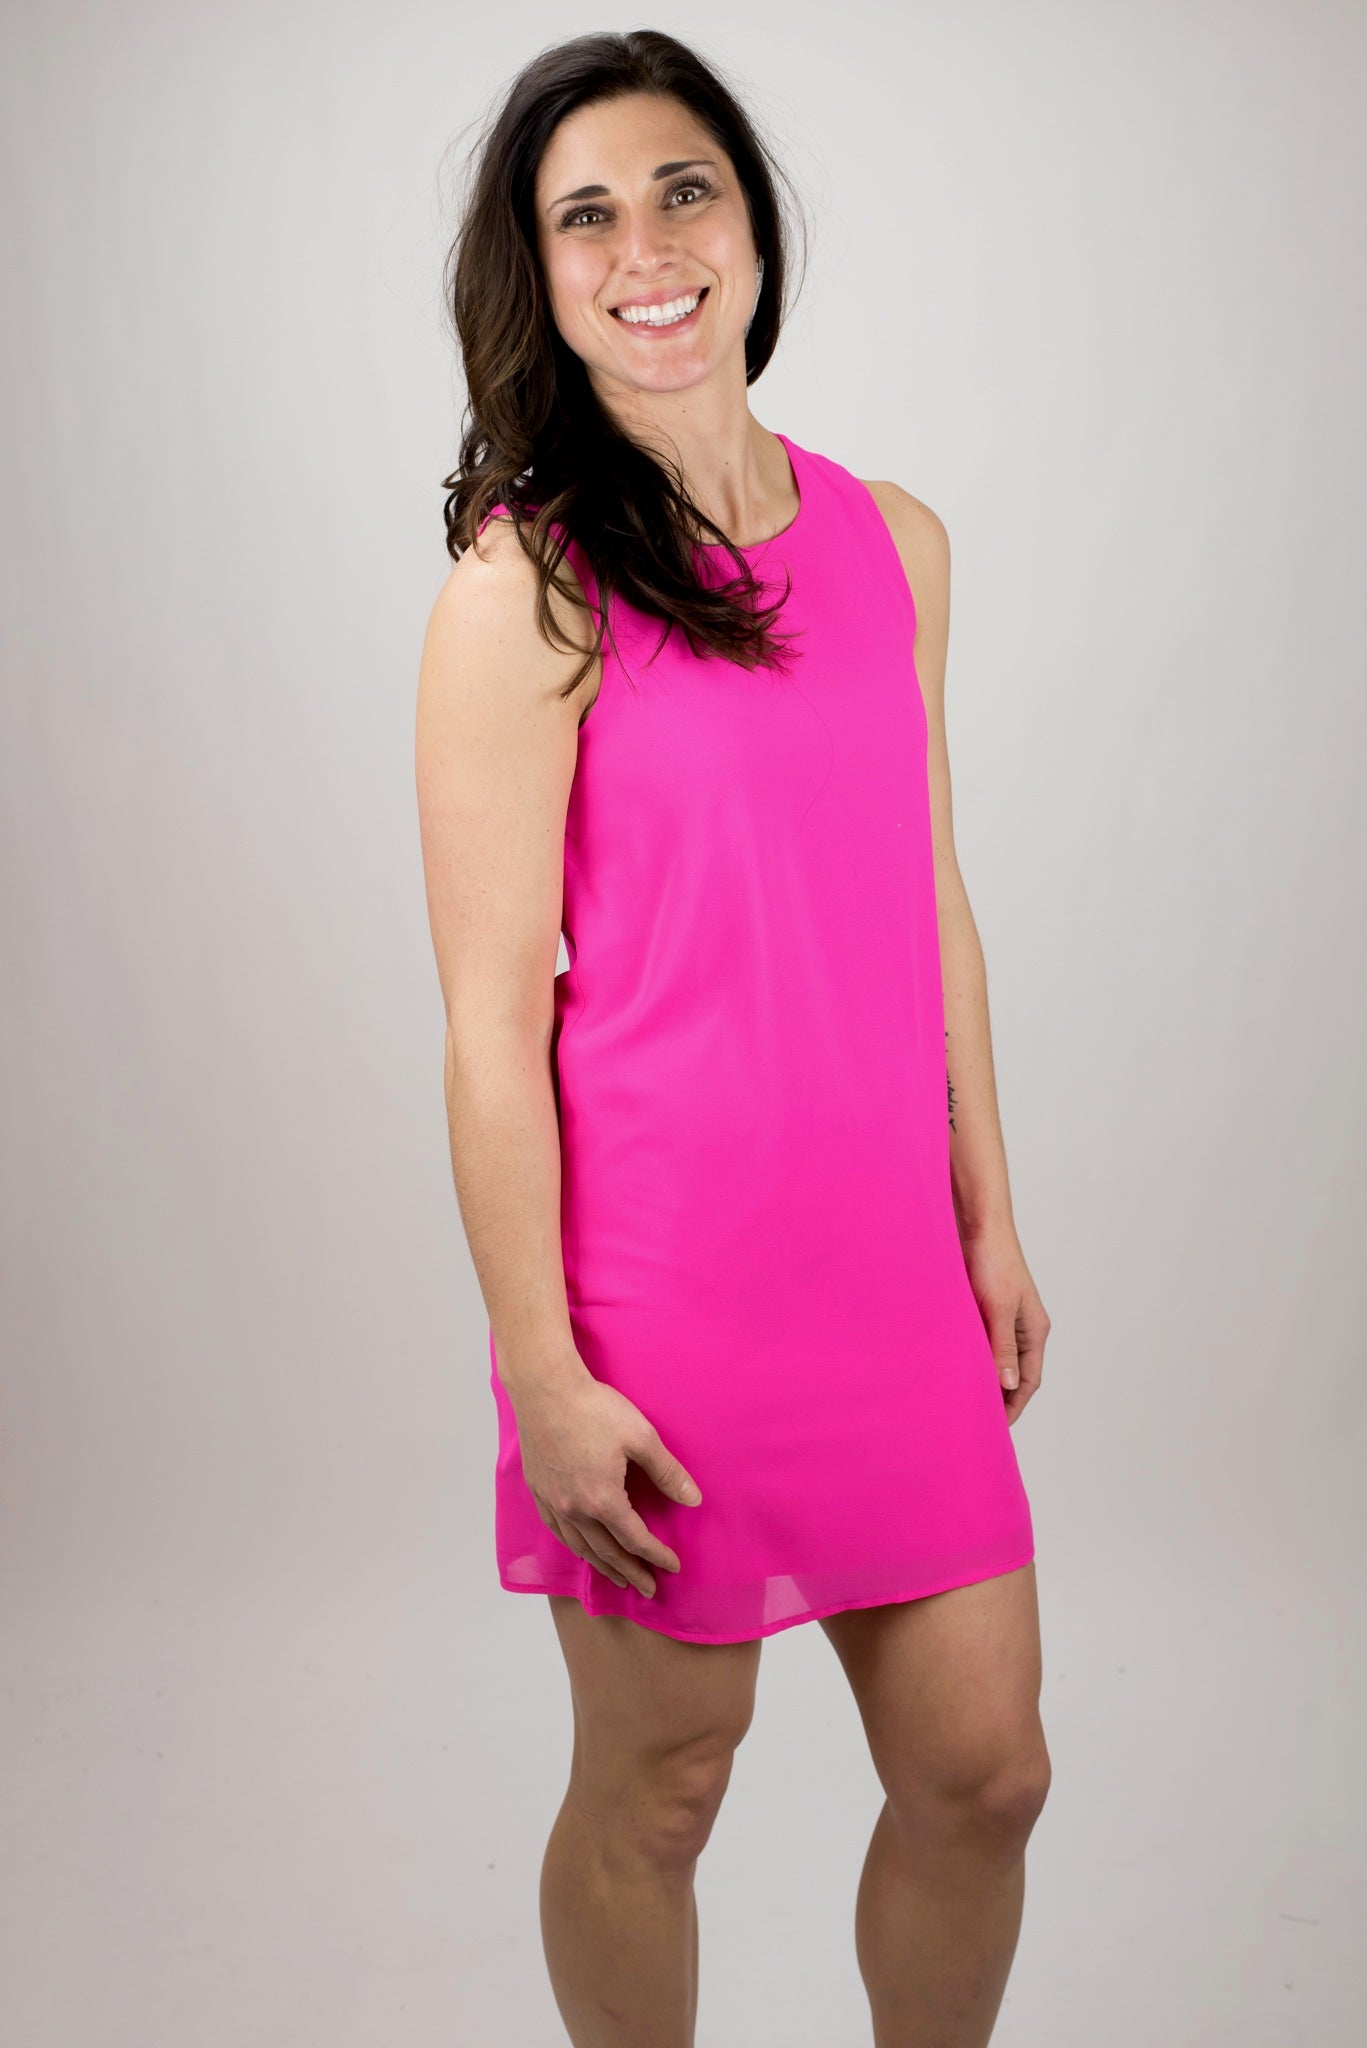 Northern Lights Fully Lined Tank Dress - Hot Pink